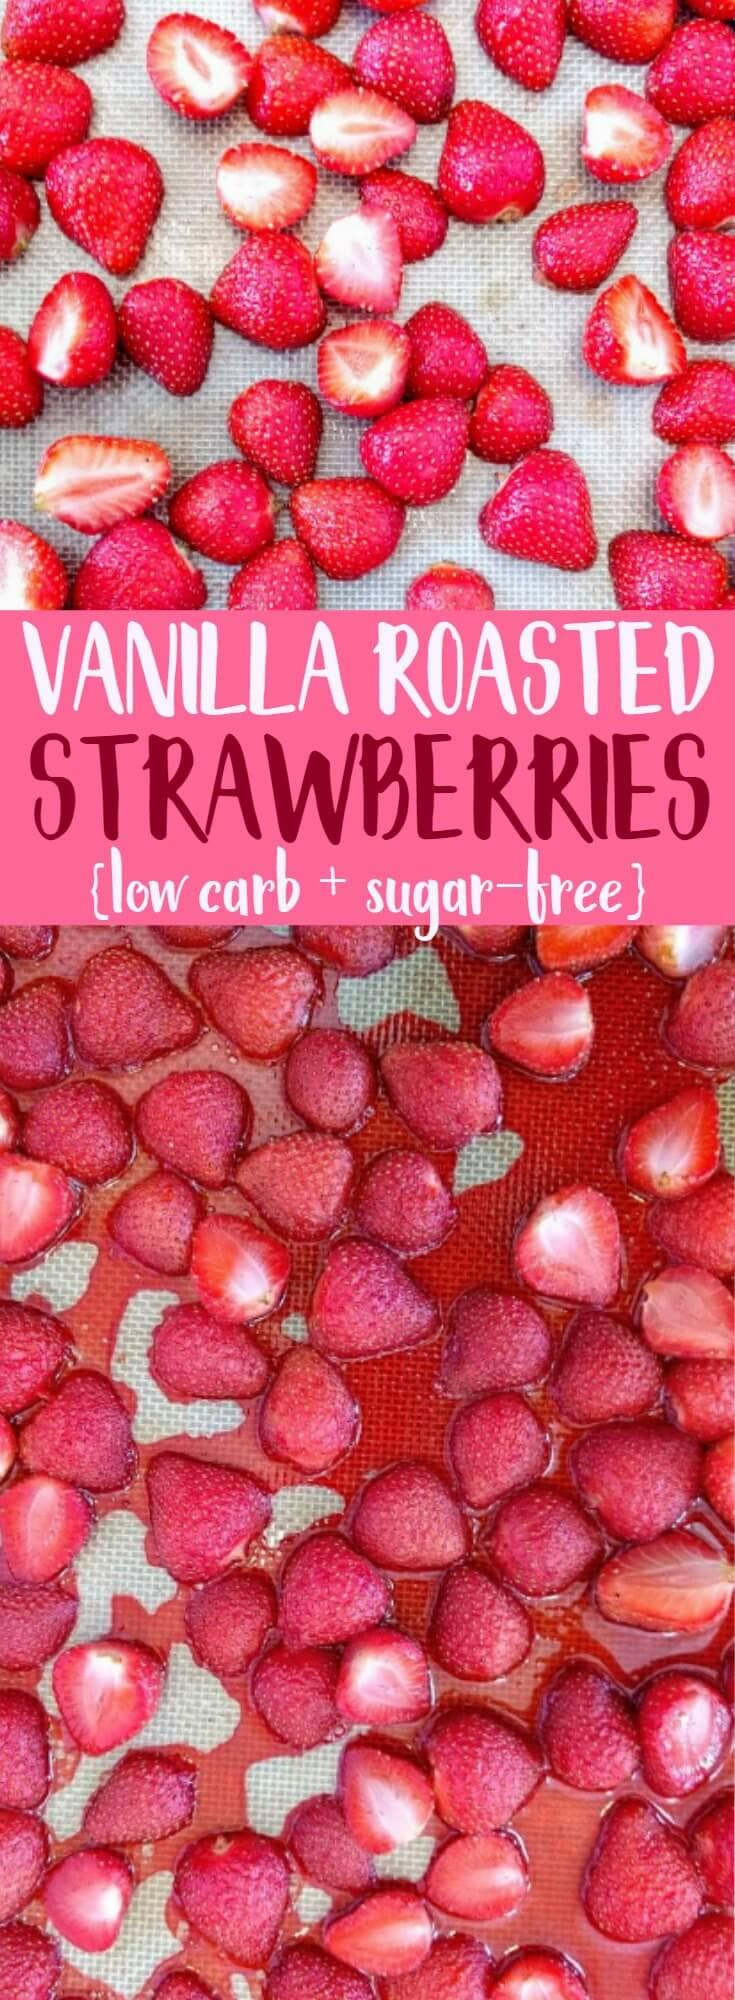 You will LOVE Vanilla Roasted Strawberries!! Vanilla roasted strawberries is a healthy, sugar-free recipe that makes a great topping for yogurt, oatmeal, or healthy ice cream. It's super easy to make and is great for low carb diets, keto diets, Paleo diets, and more! #strawberries #roastedstrawberries #keto #ketodiet